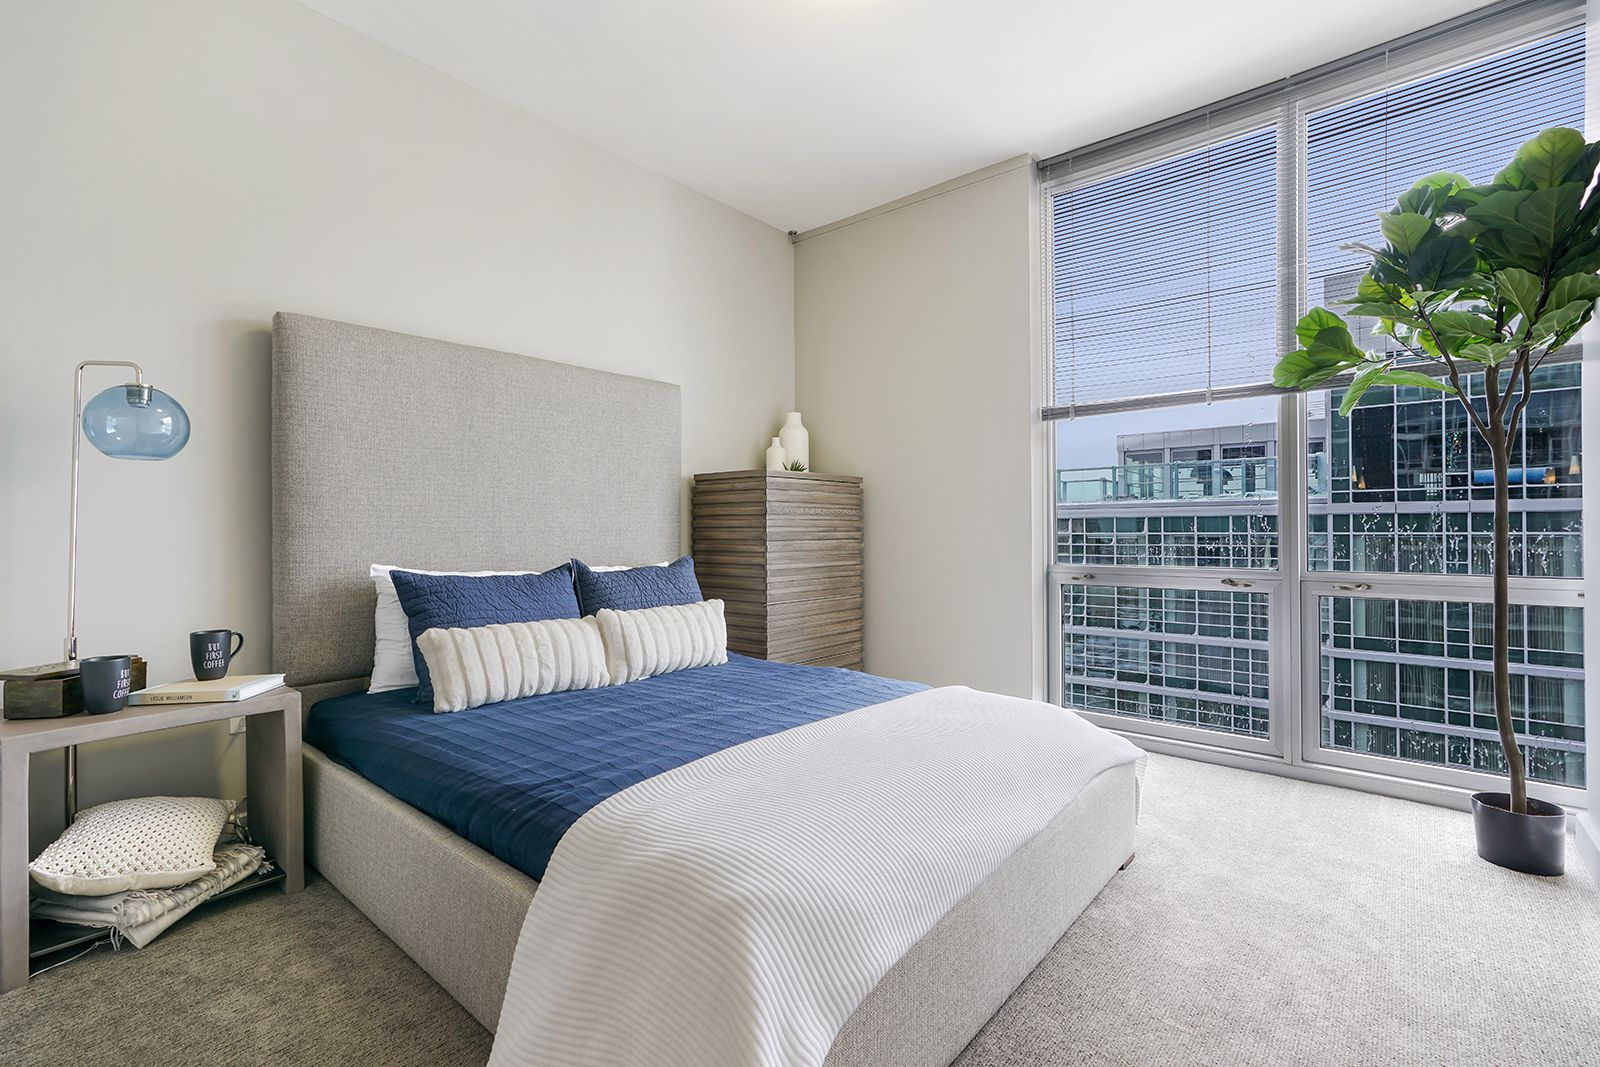 Arrive LEX's central location provides easy access to all